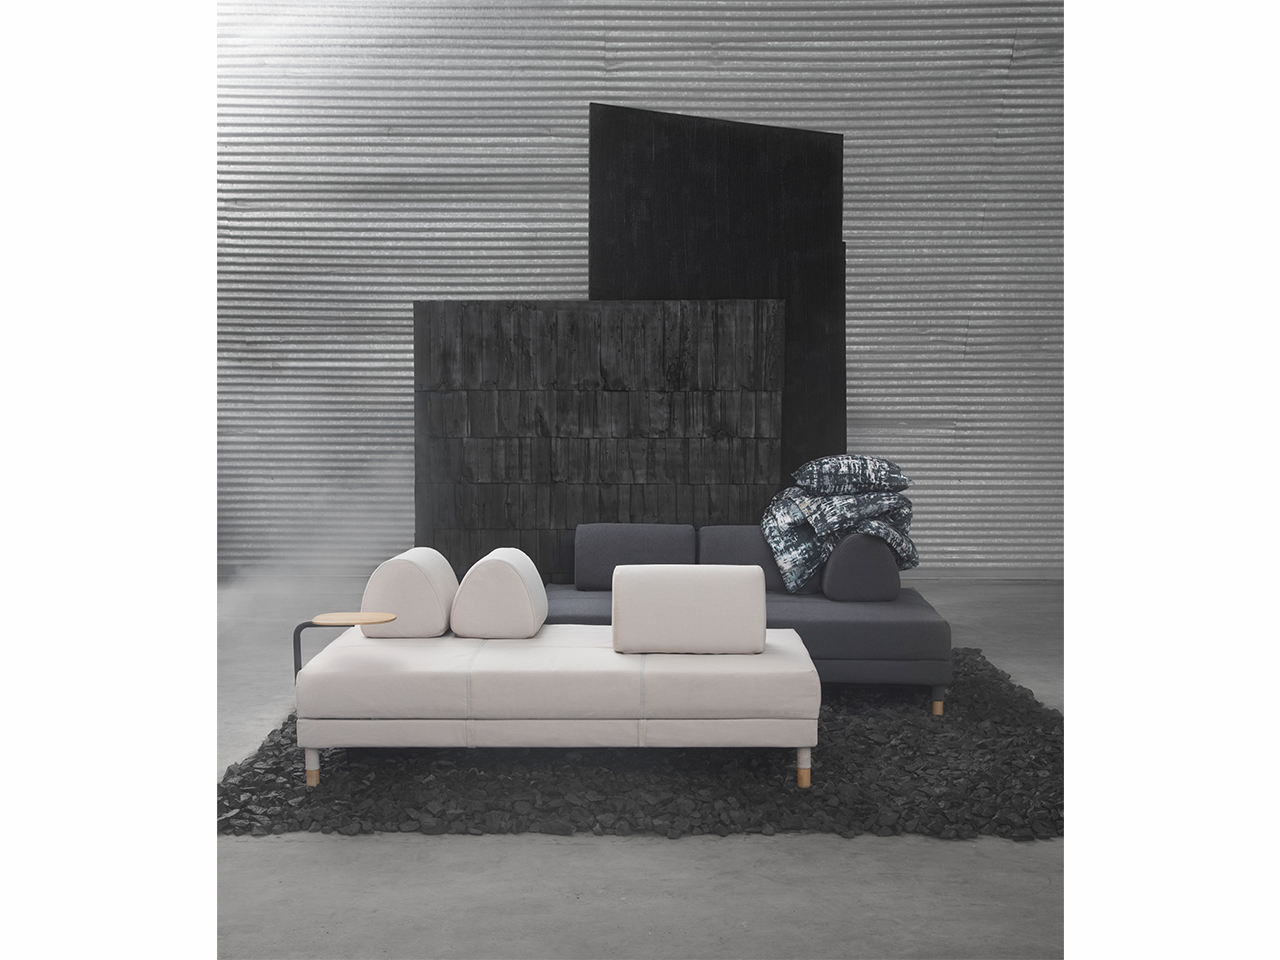 best sofa beds canada 2017 4 u the 13 finds from ikea 39s new fall line chatelaine